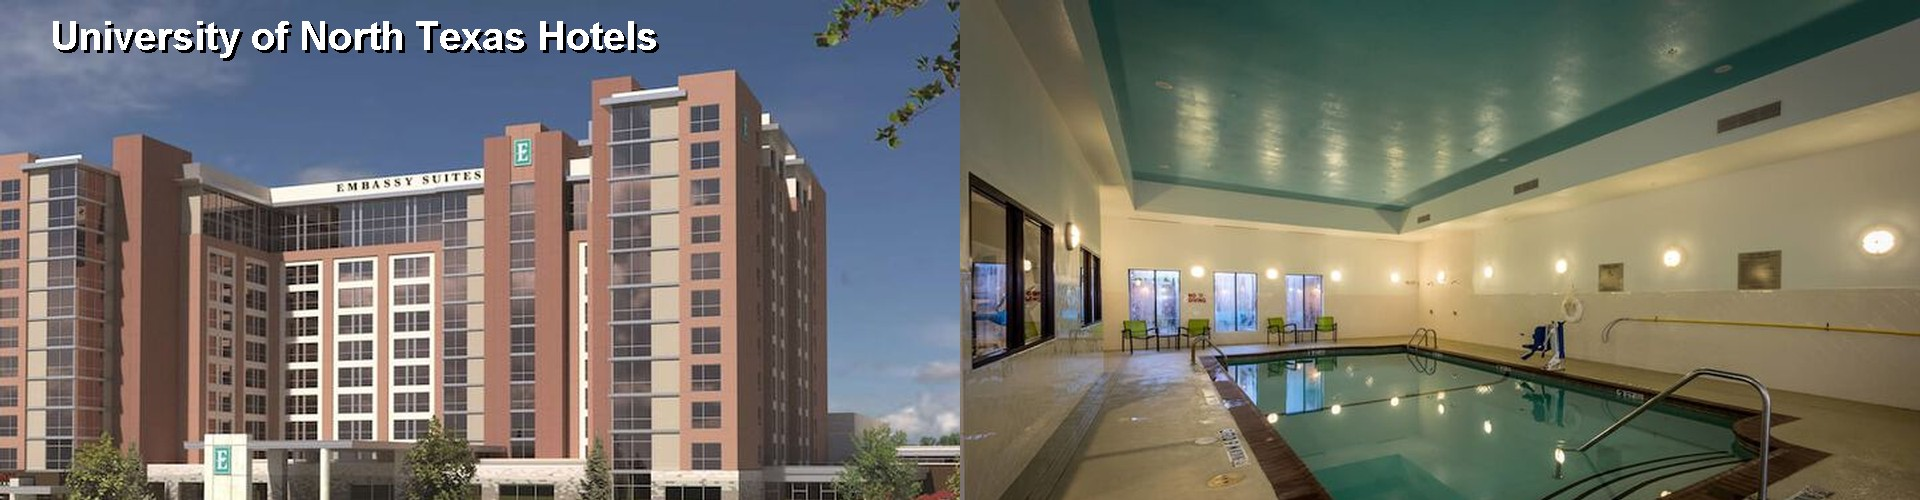 5 Best Hotels near University of North Texas